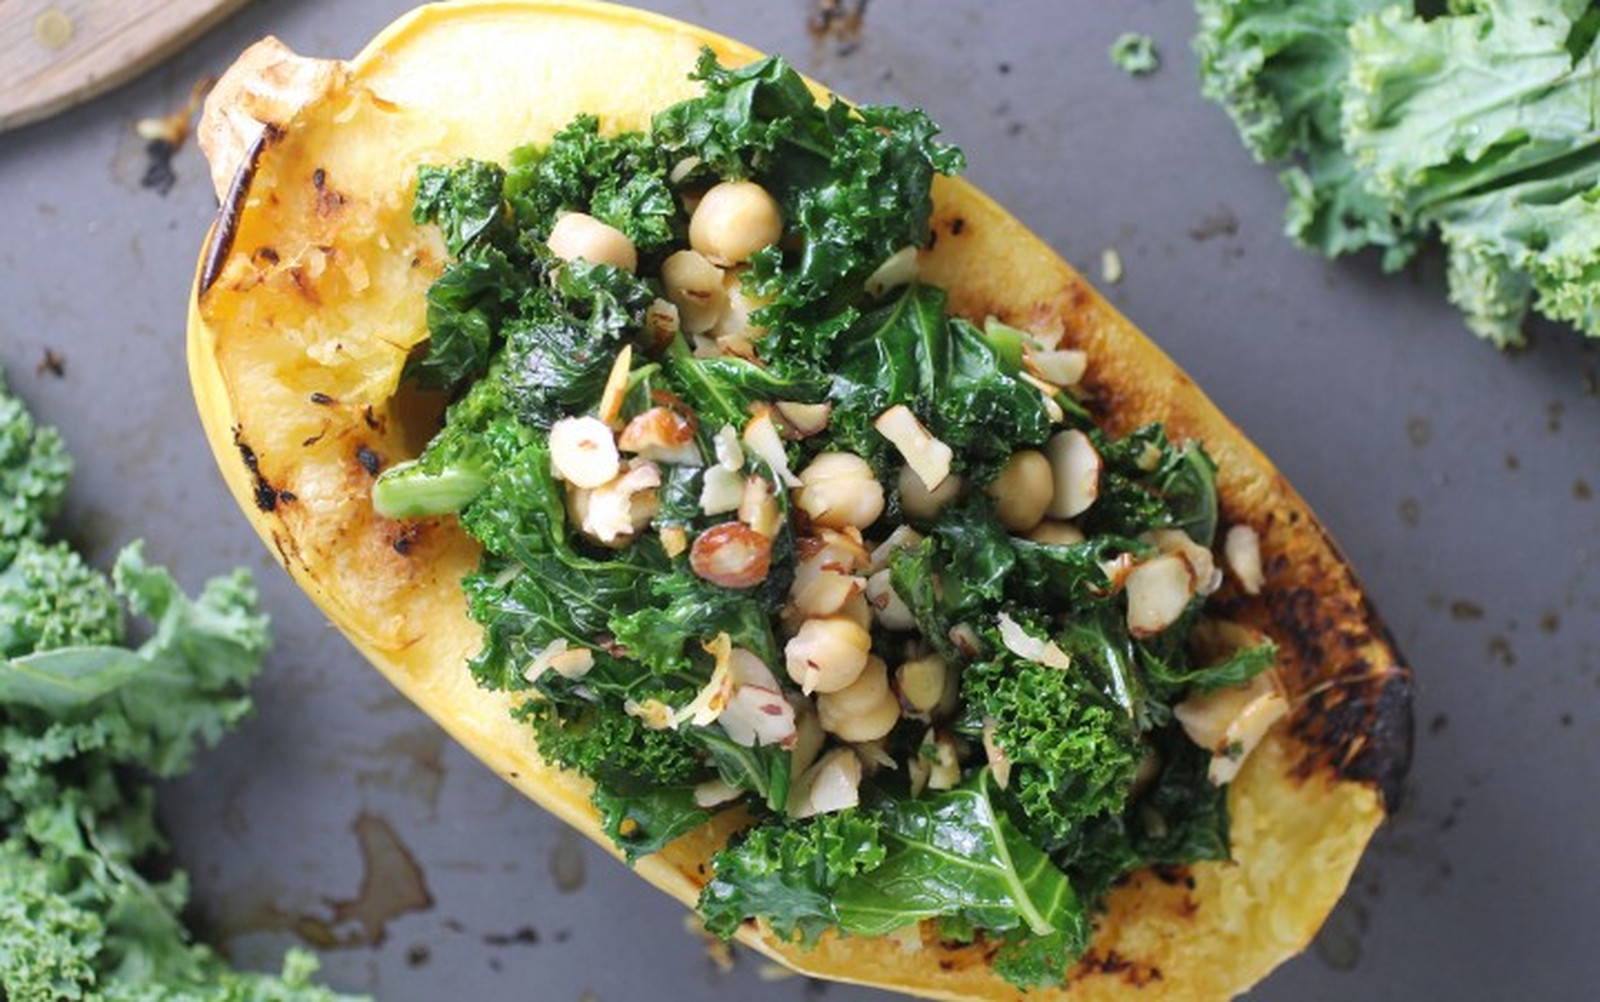 Kale and Chickpea Stuffed Spaghetti Squash